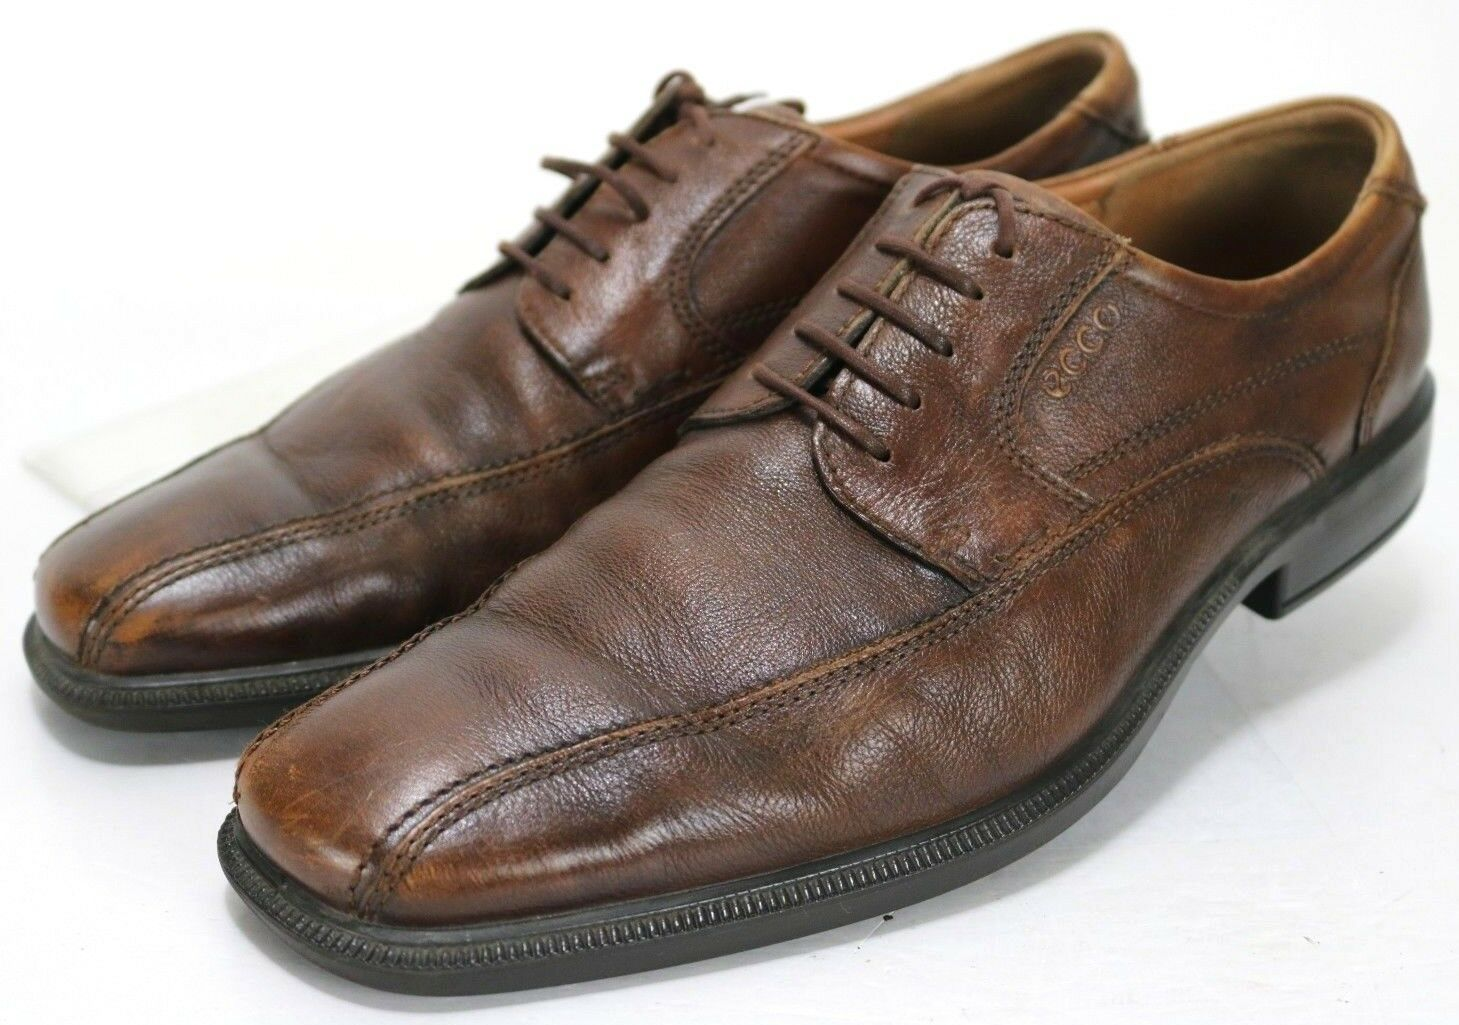 ECCO  140 Men's Oxfords Dress shoes Size EU 45 US 11-11.5 Leather Brown